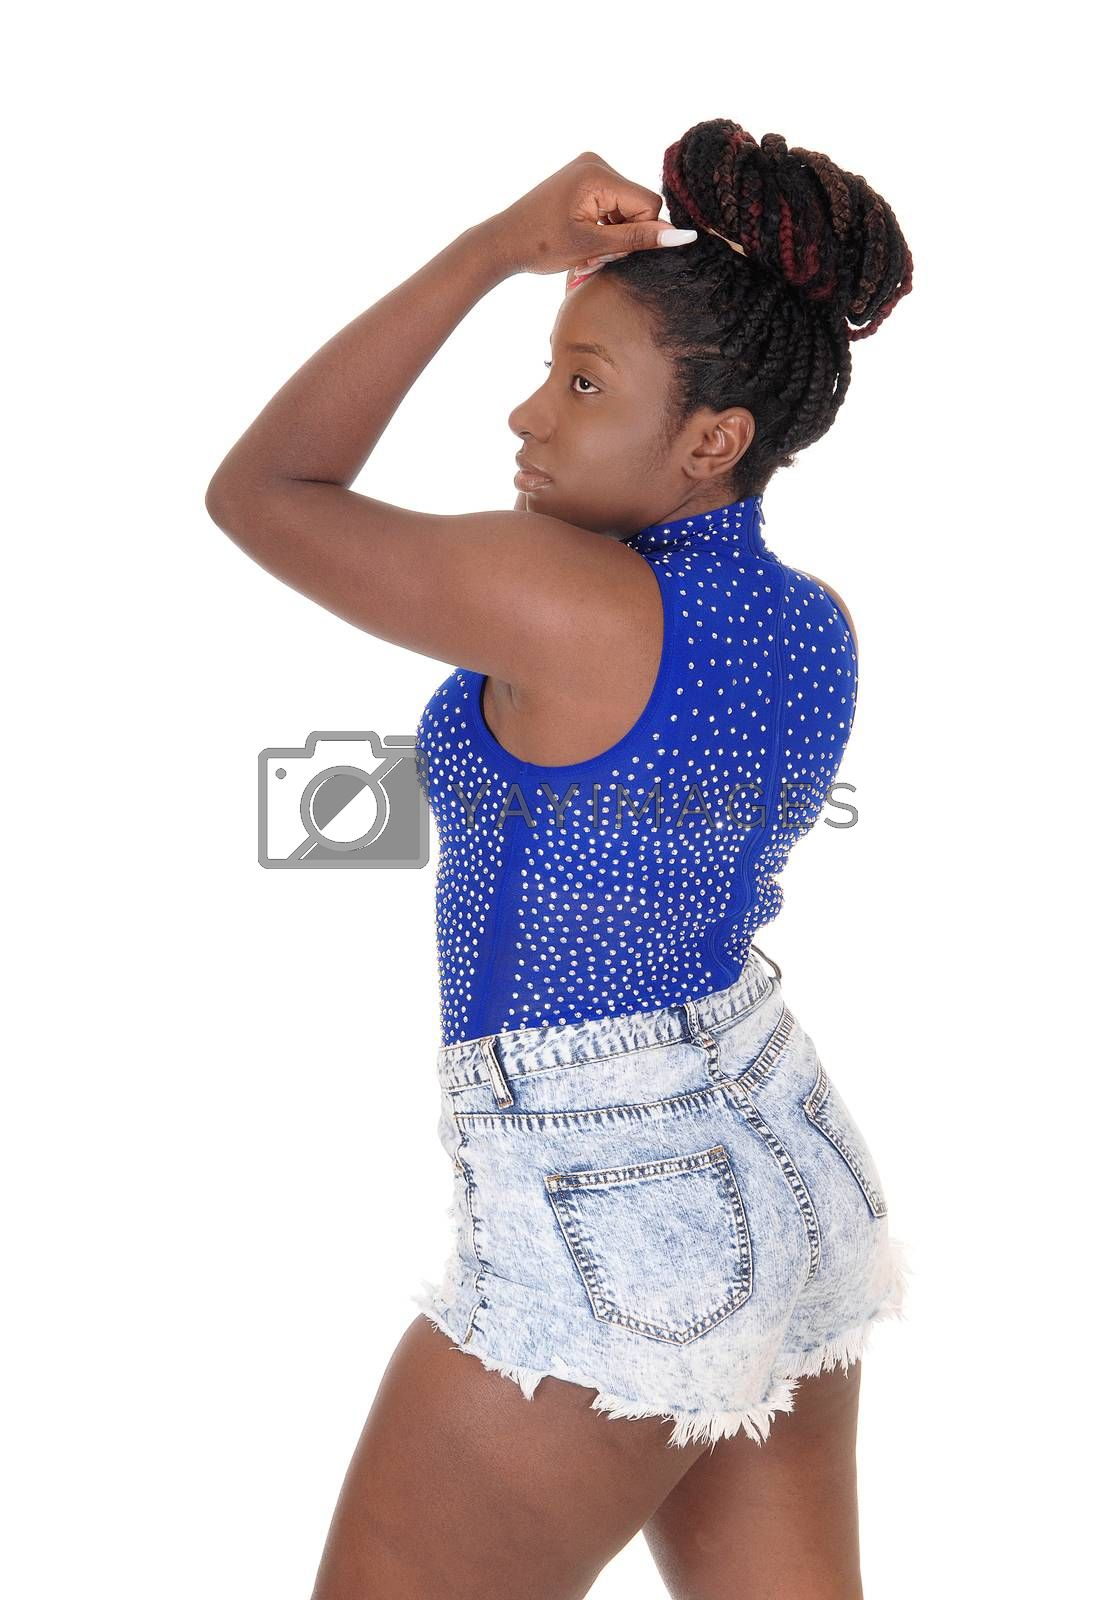 A beautiful tall African American woman standing in the studio in a blue top and jeans shorts, isolated for white background